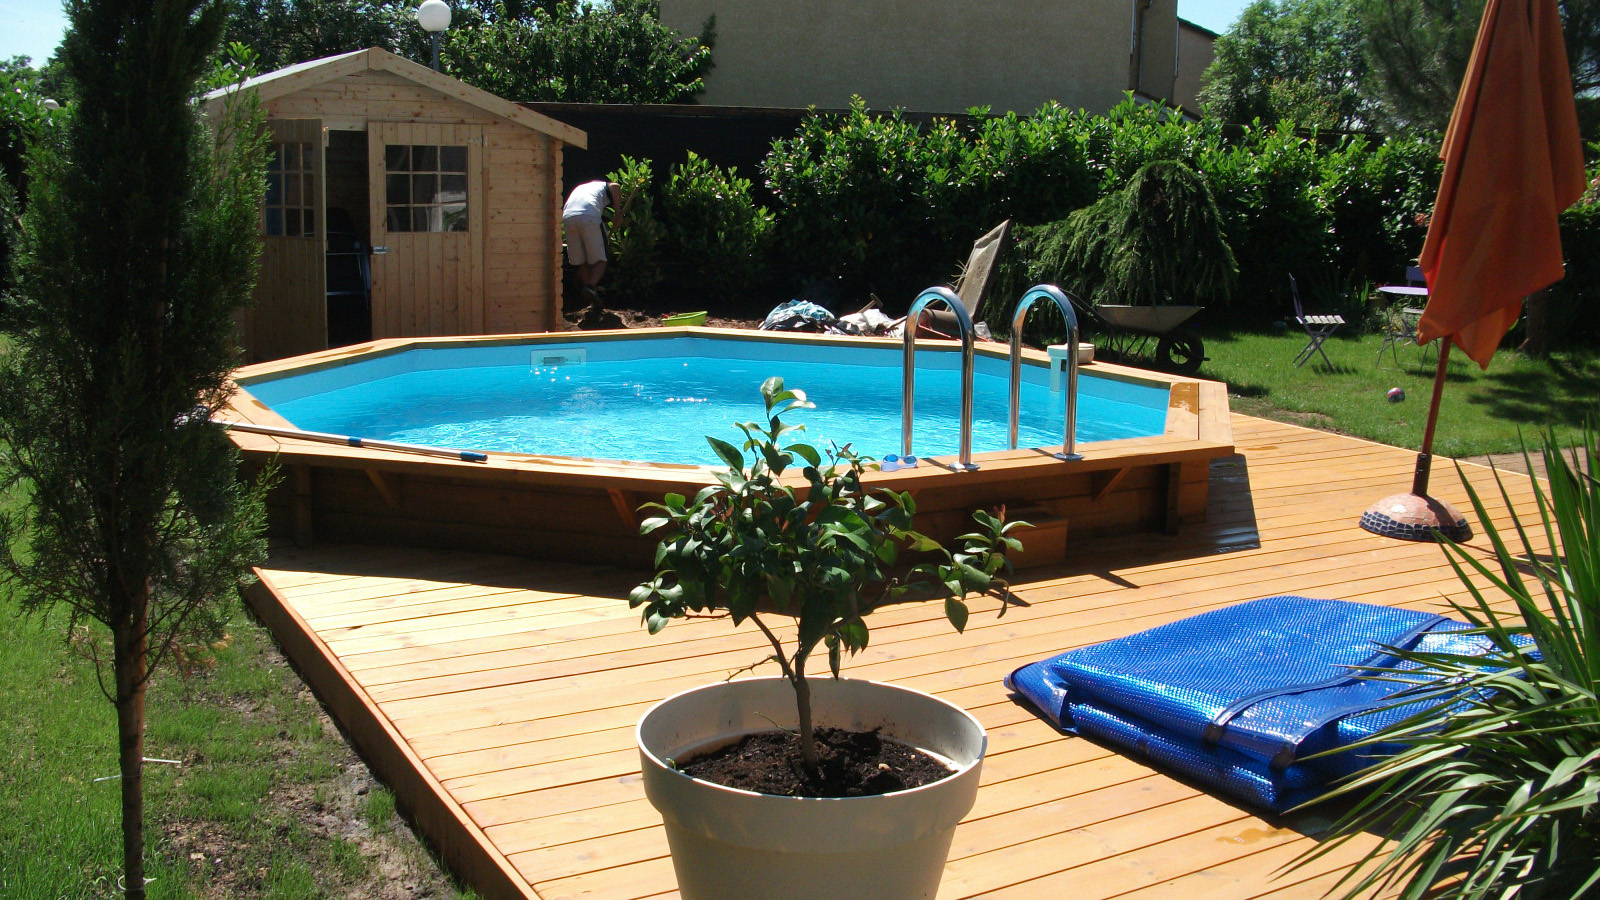 piscine hors sol avec terrasse bois fabrication terrasse bois composite pour piscine avec. Black Bedroom Furniture Sets. Home Design Ideas